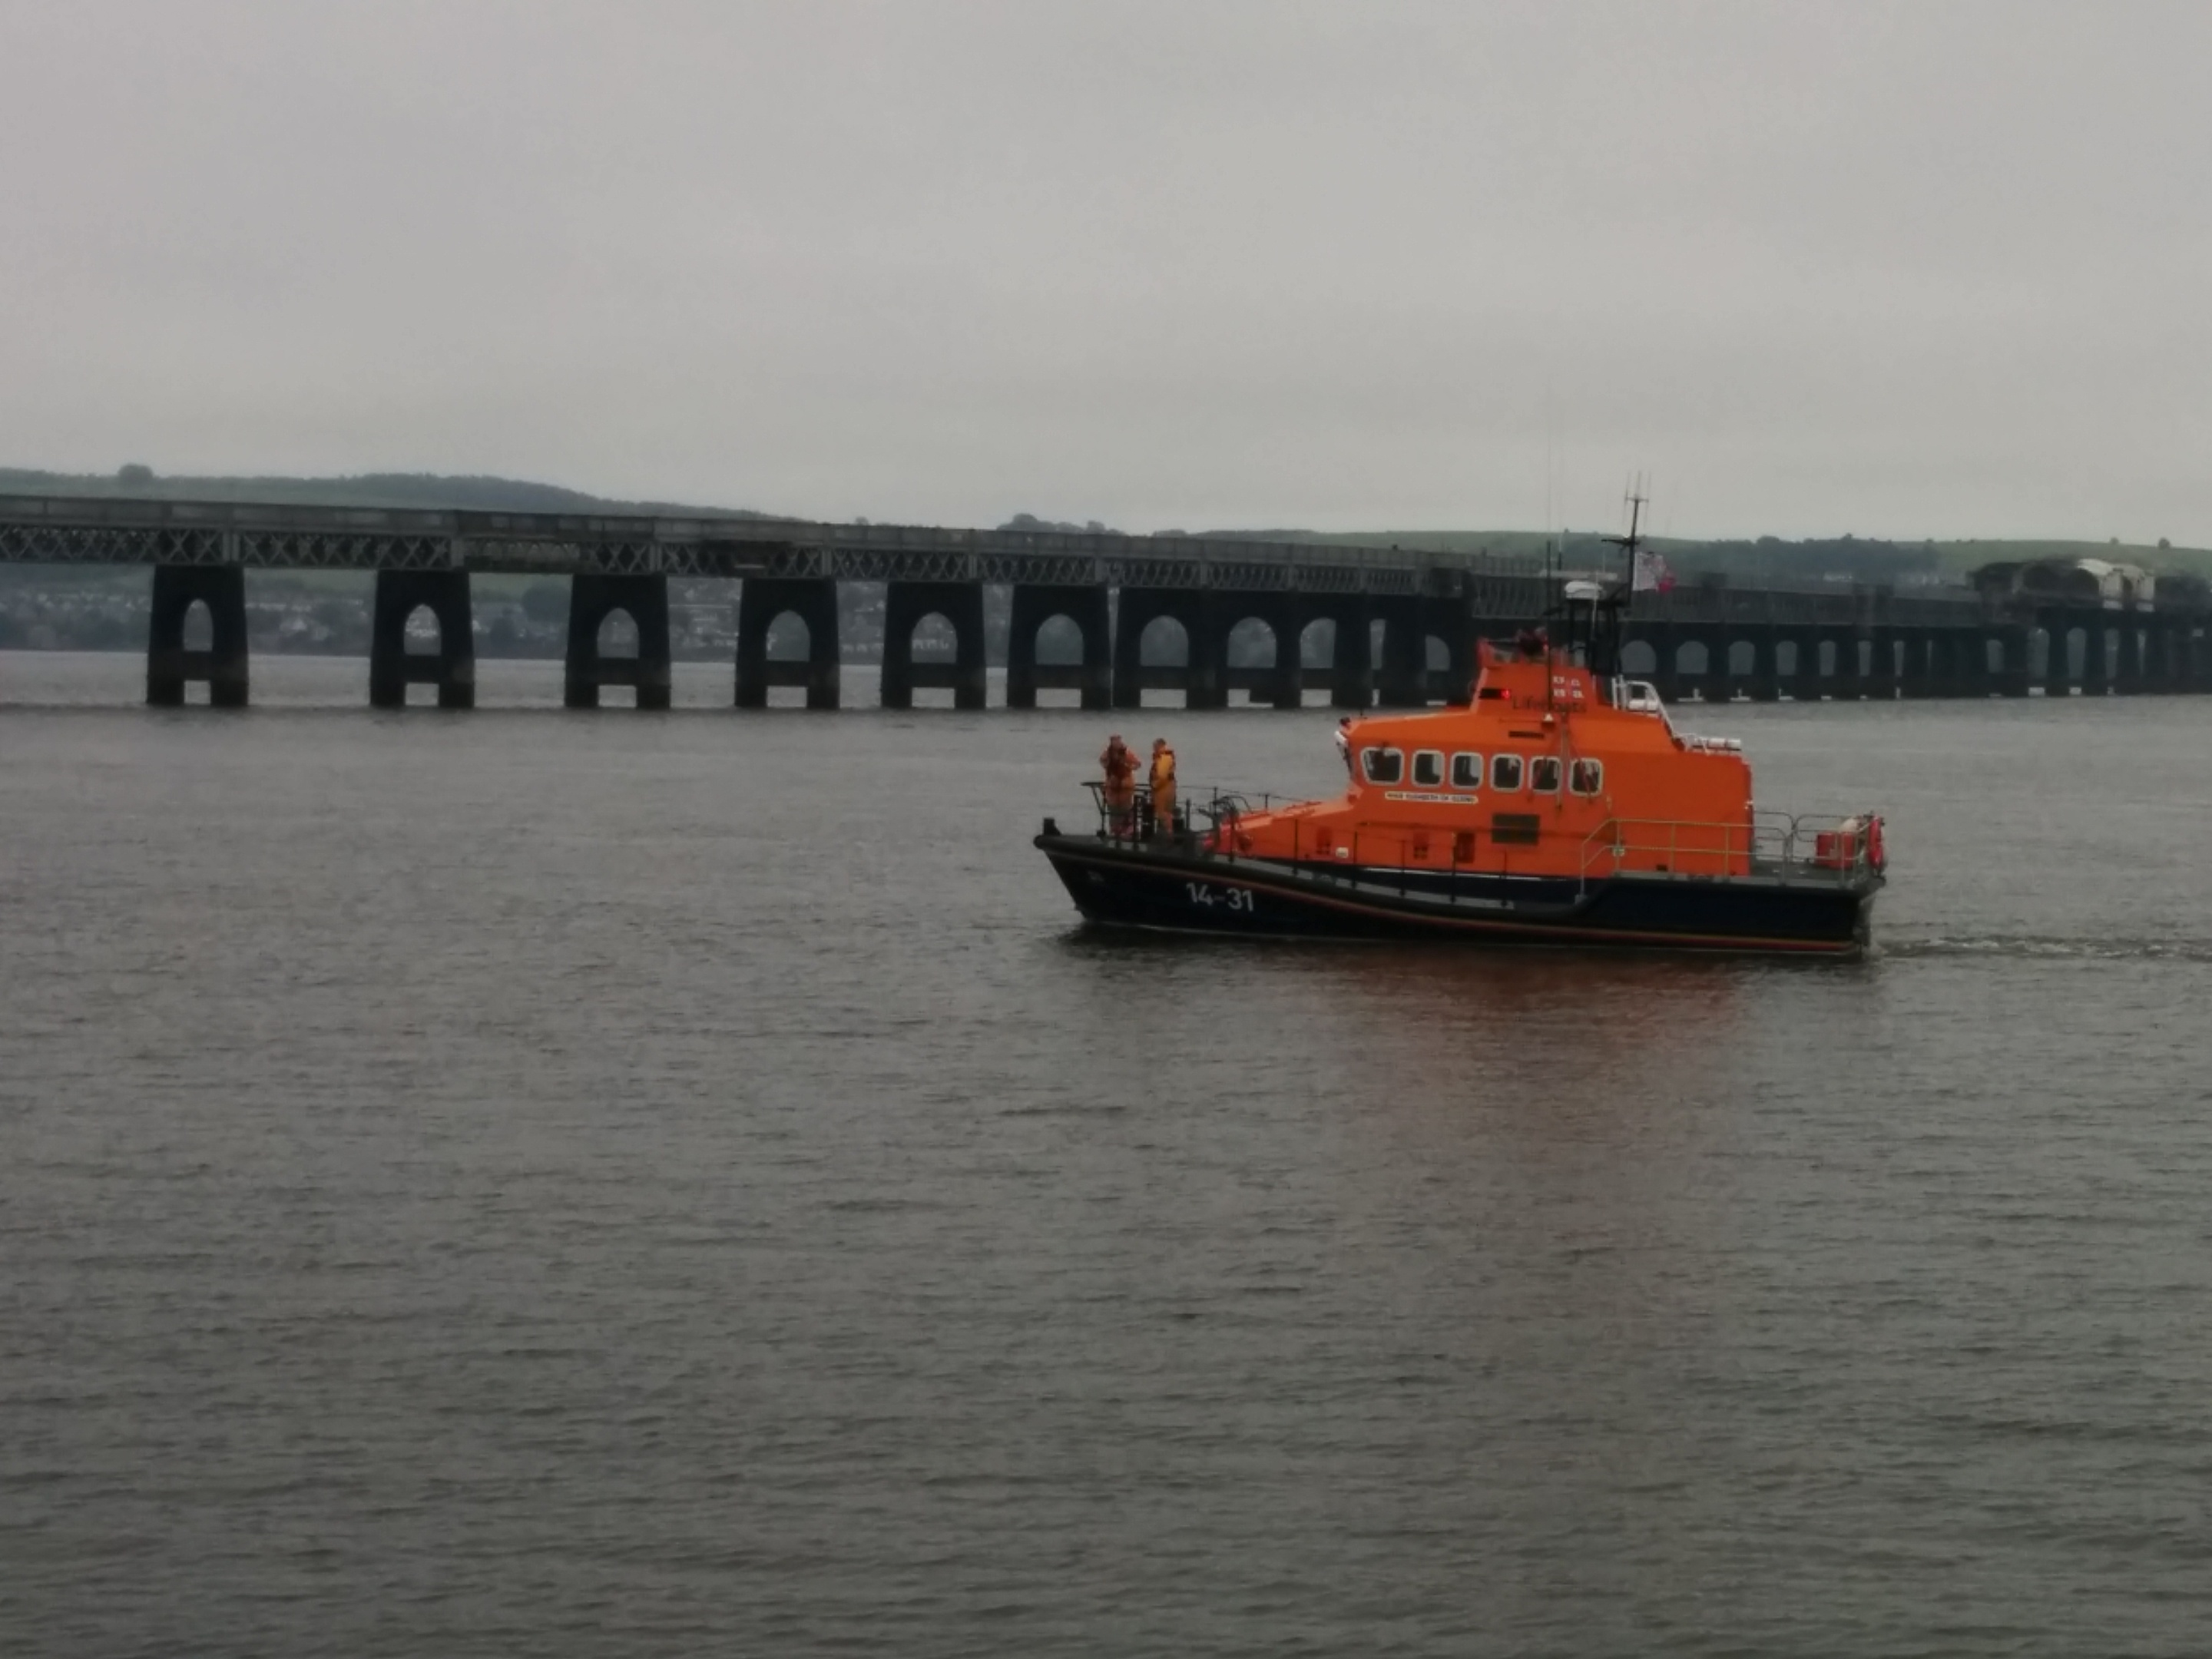 Mr Schiavetta believes a fitting memorial could be placed at the Broughty Ferry lifeboat shed.